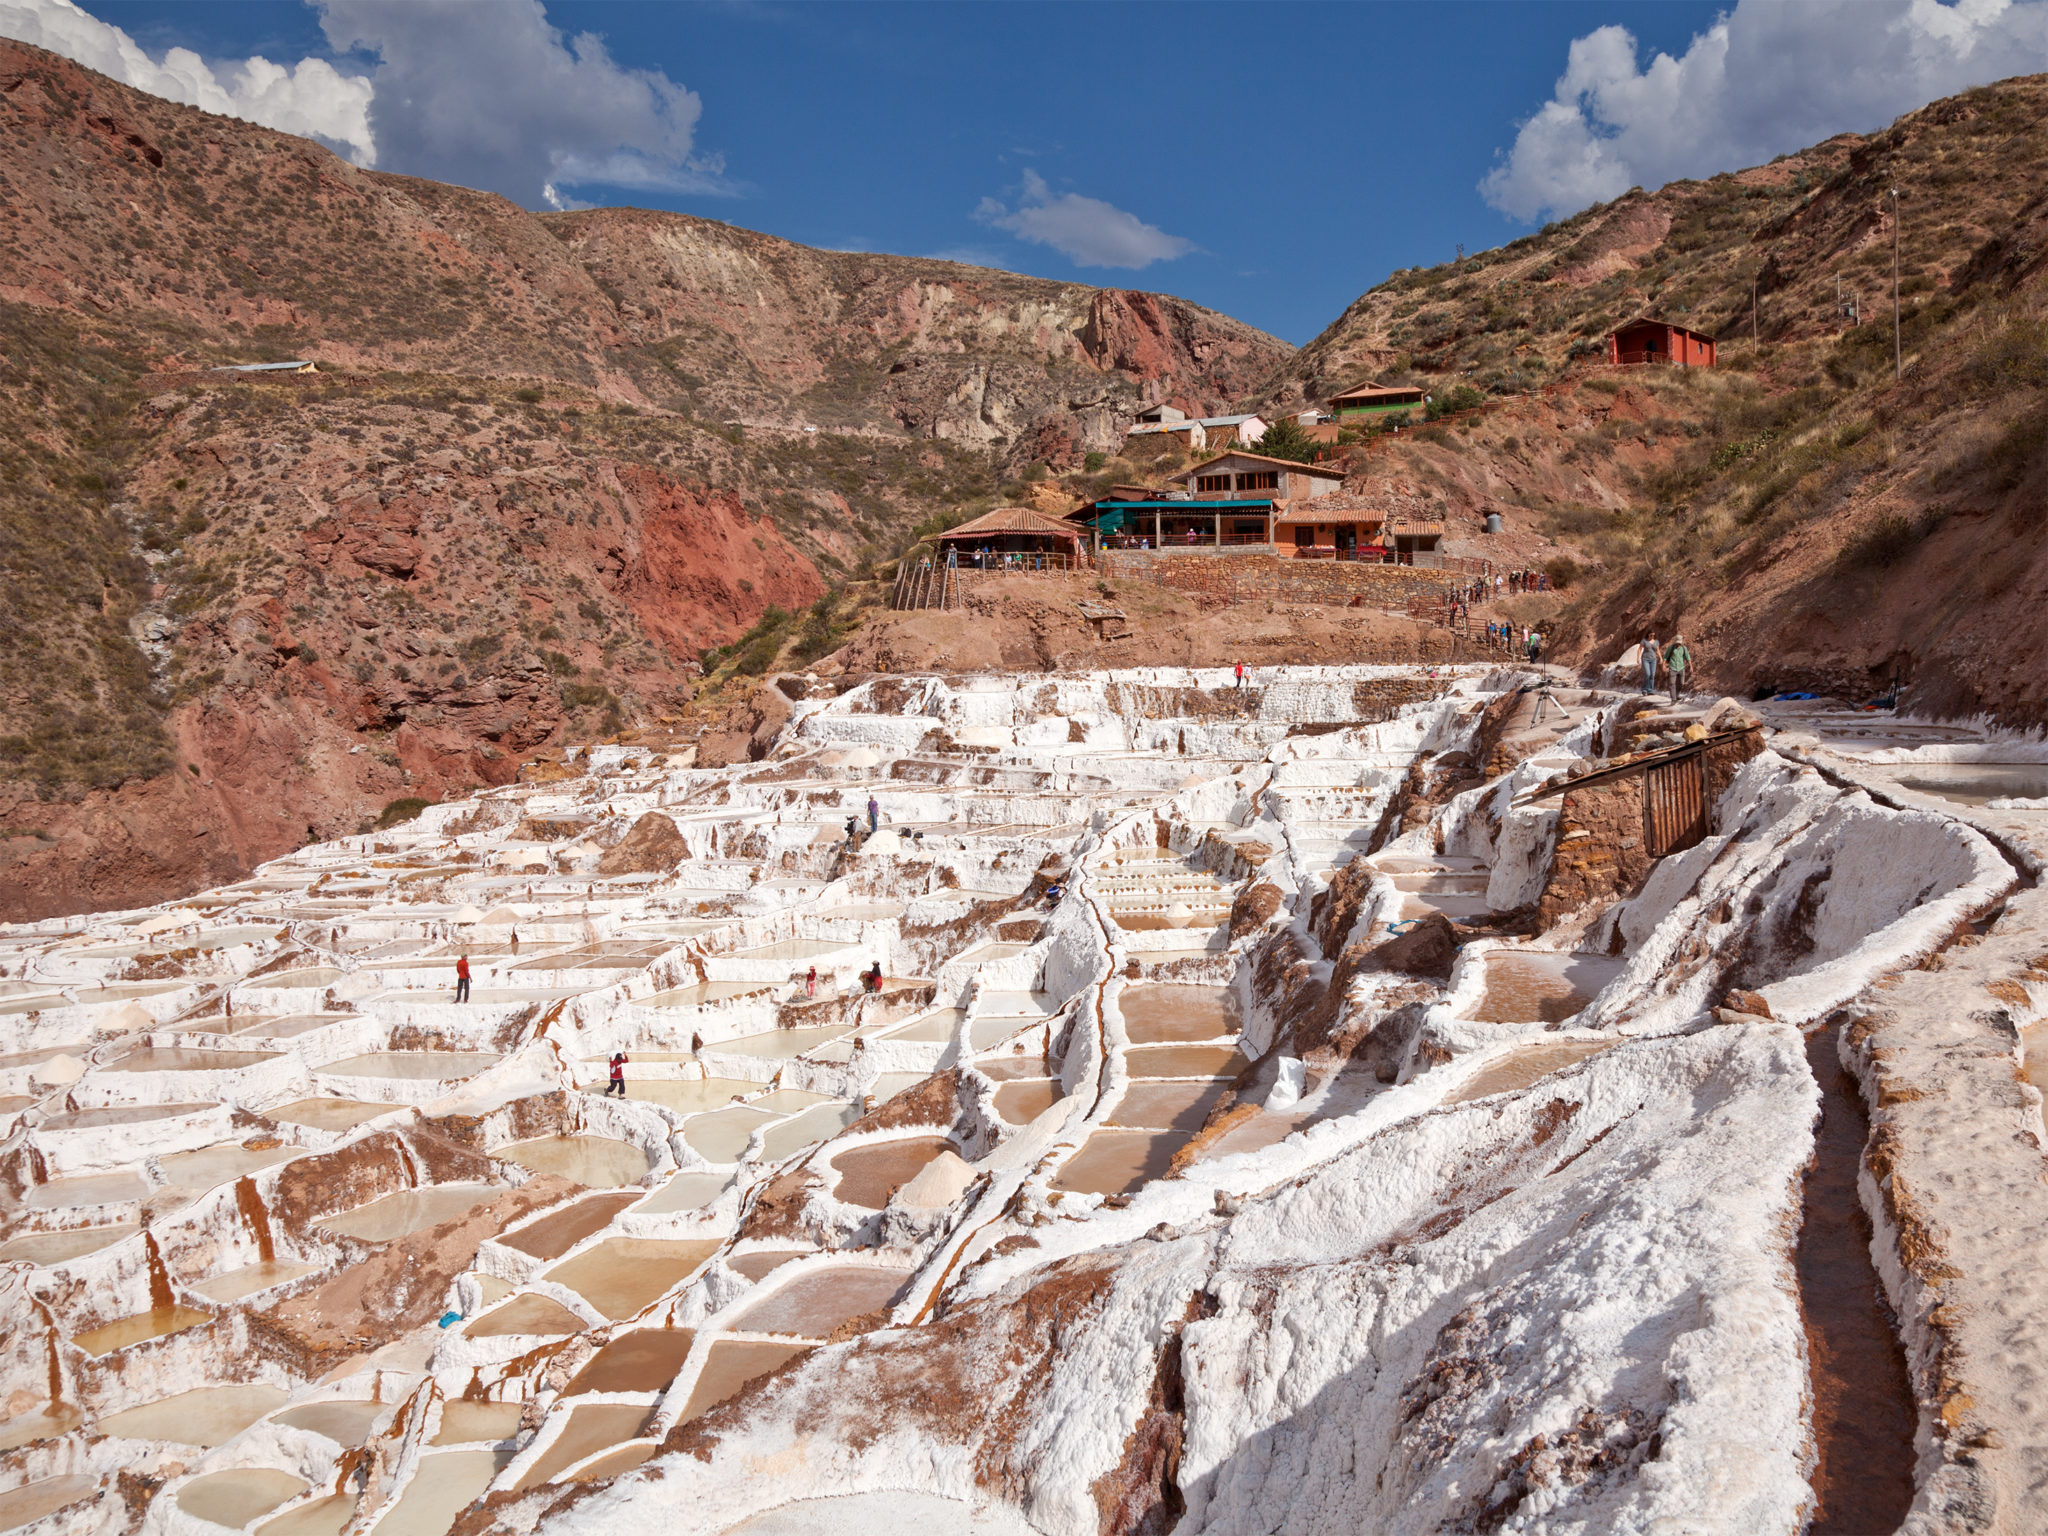 Kusa-Treks-Maras-Salt-Mines-Incredible-View-1.jpg